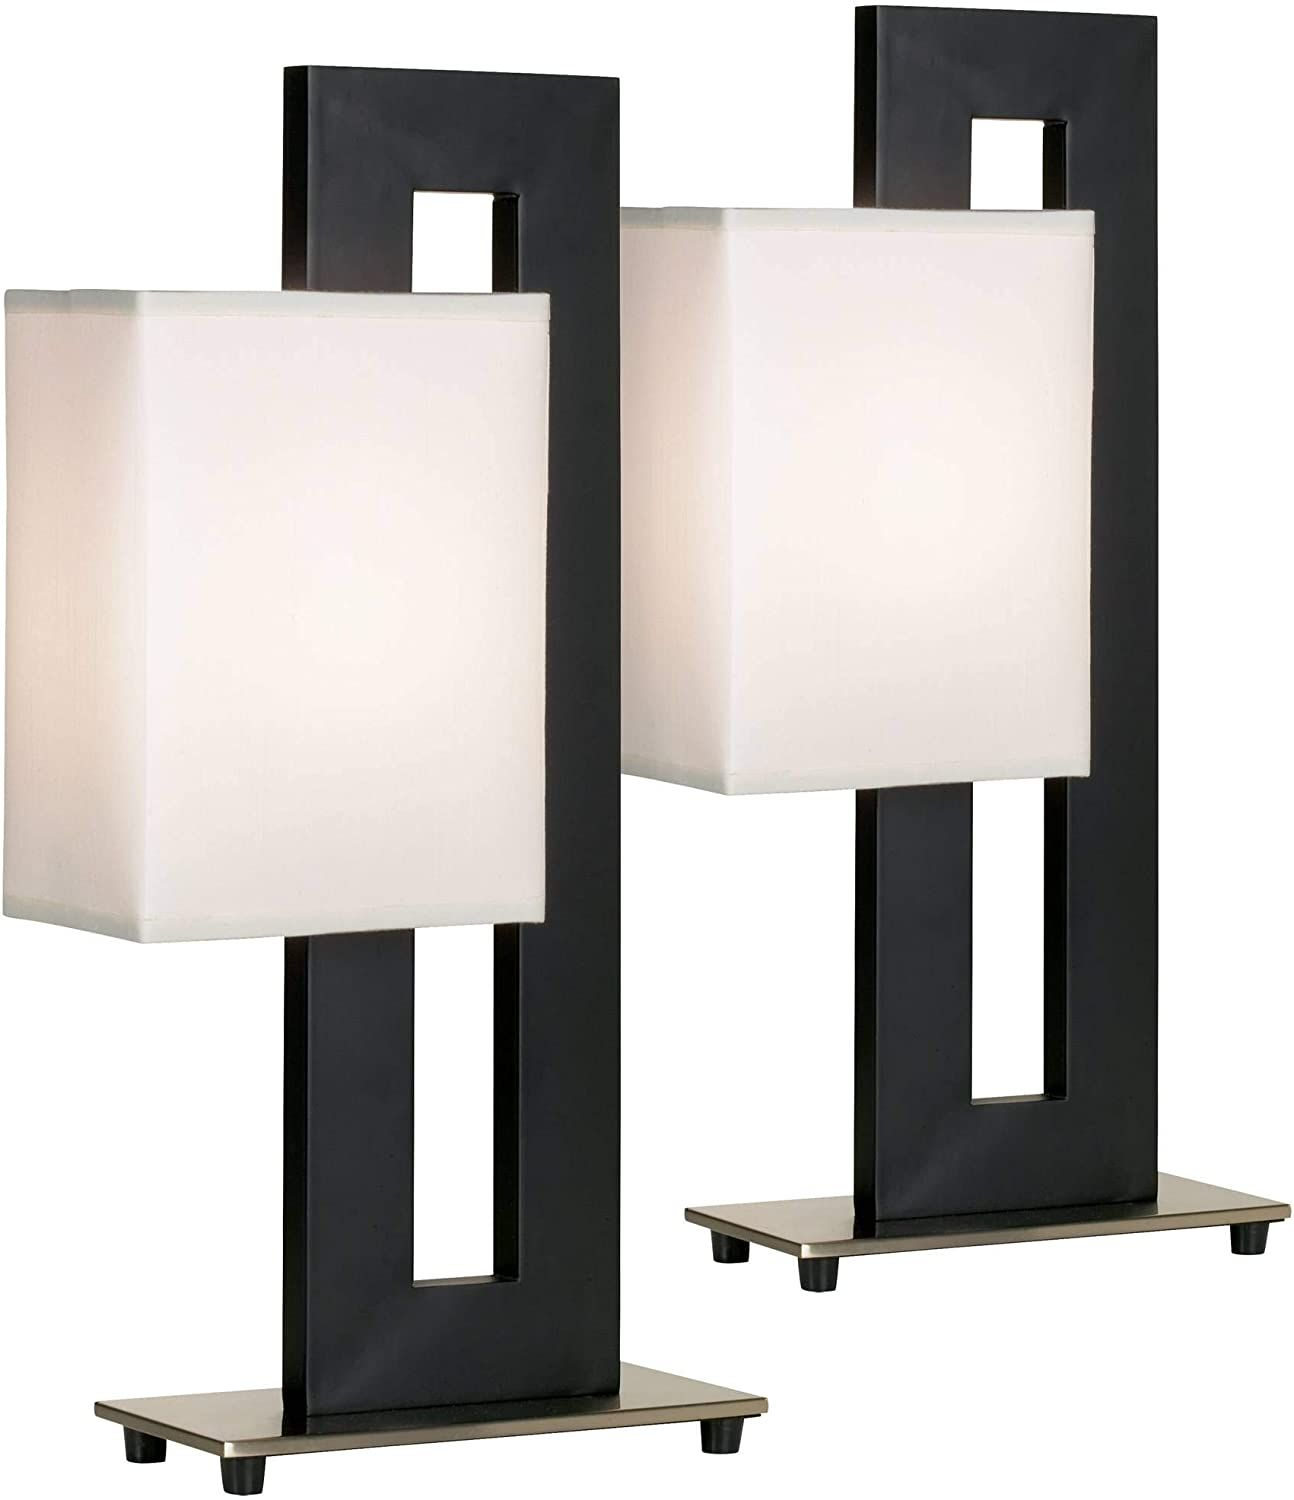 Floating Square Modern Accent Table Lamps Set of 2 Black